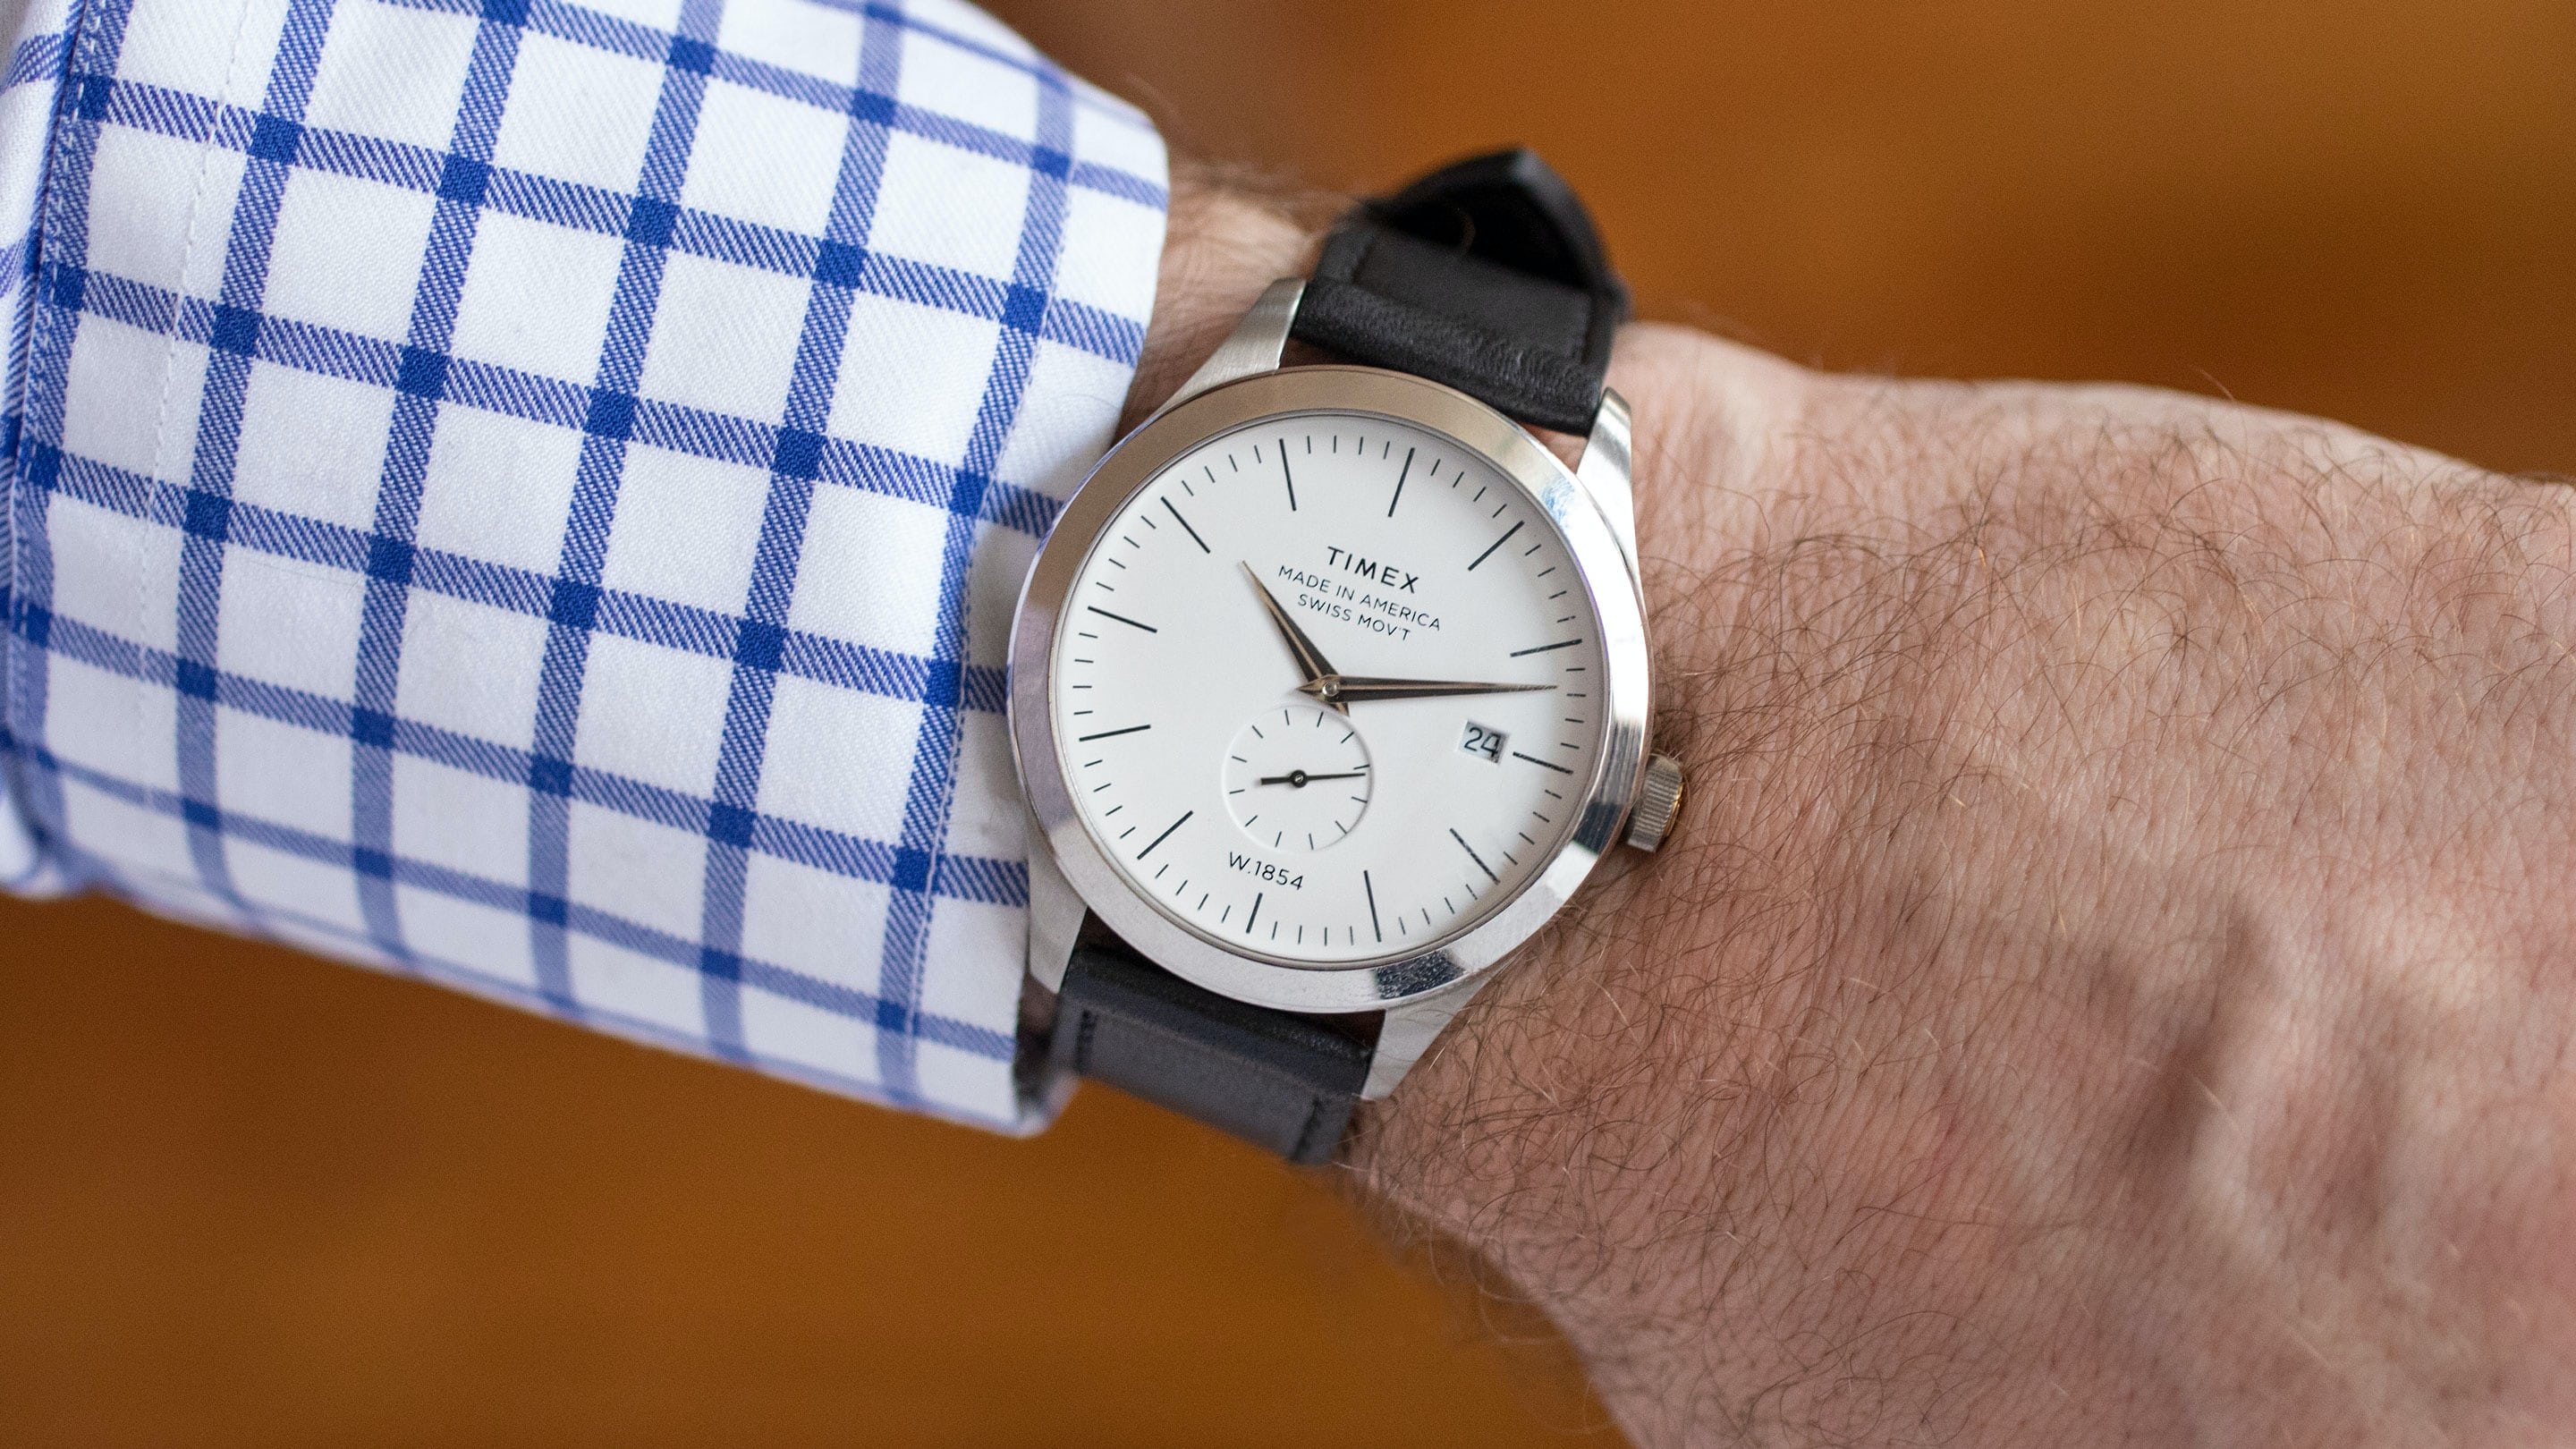 9c766114dd Introducing: The Timex American Documents Series - HODINKEE